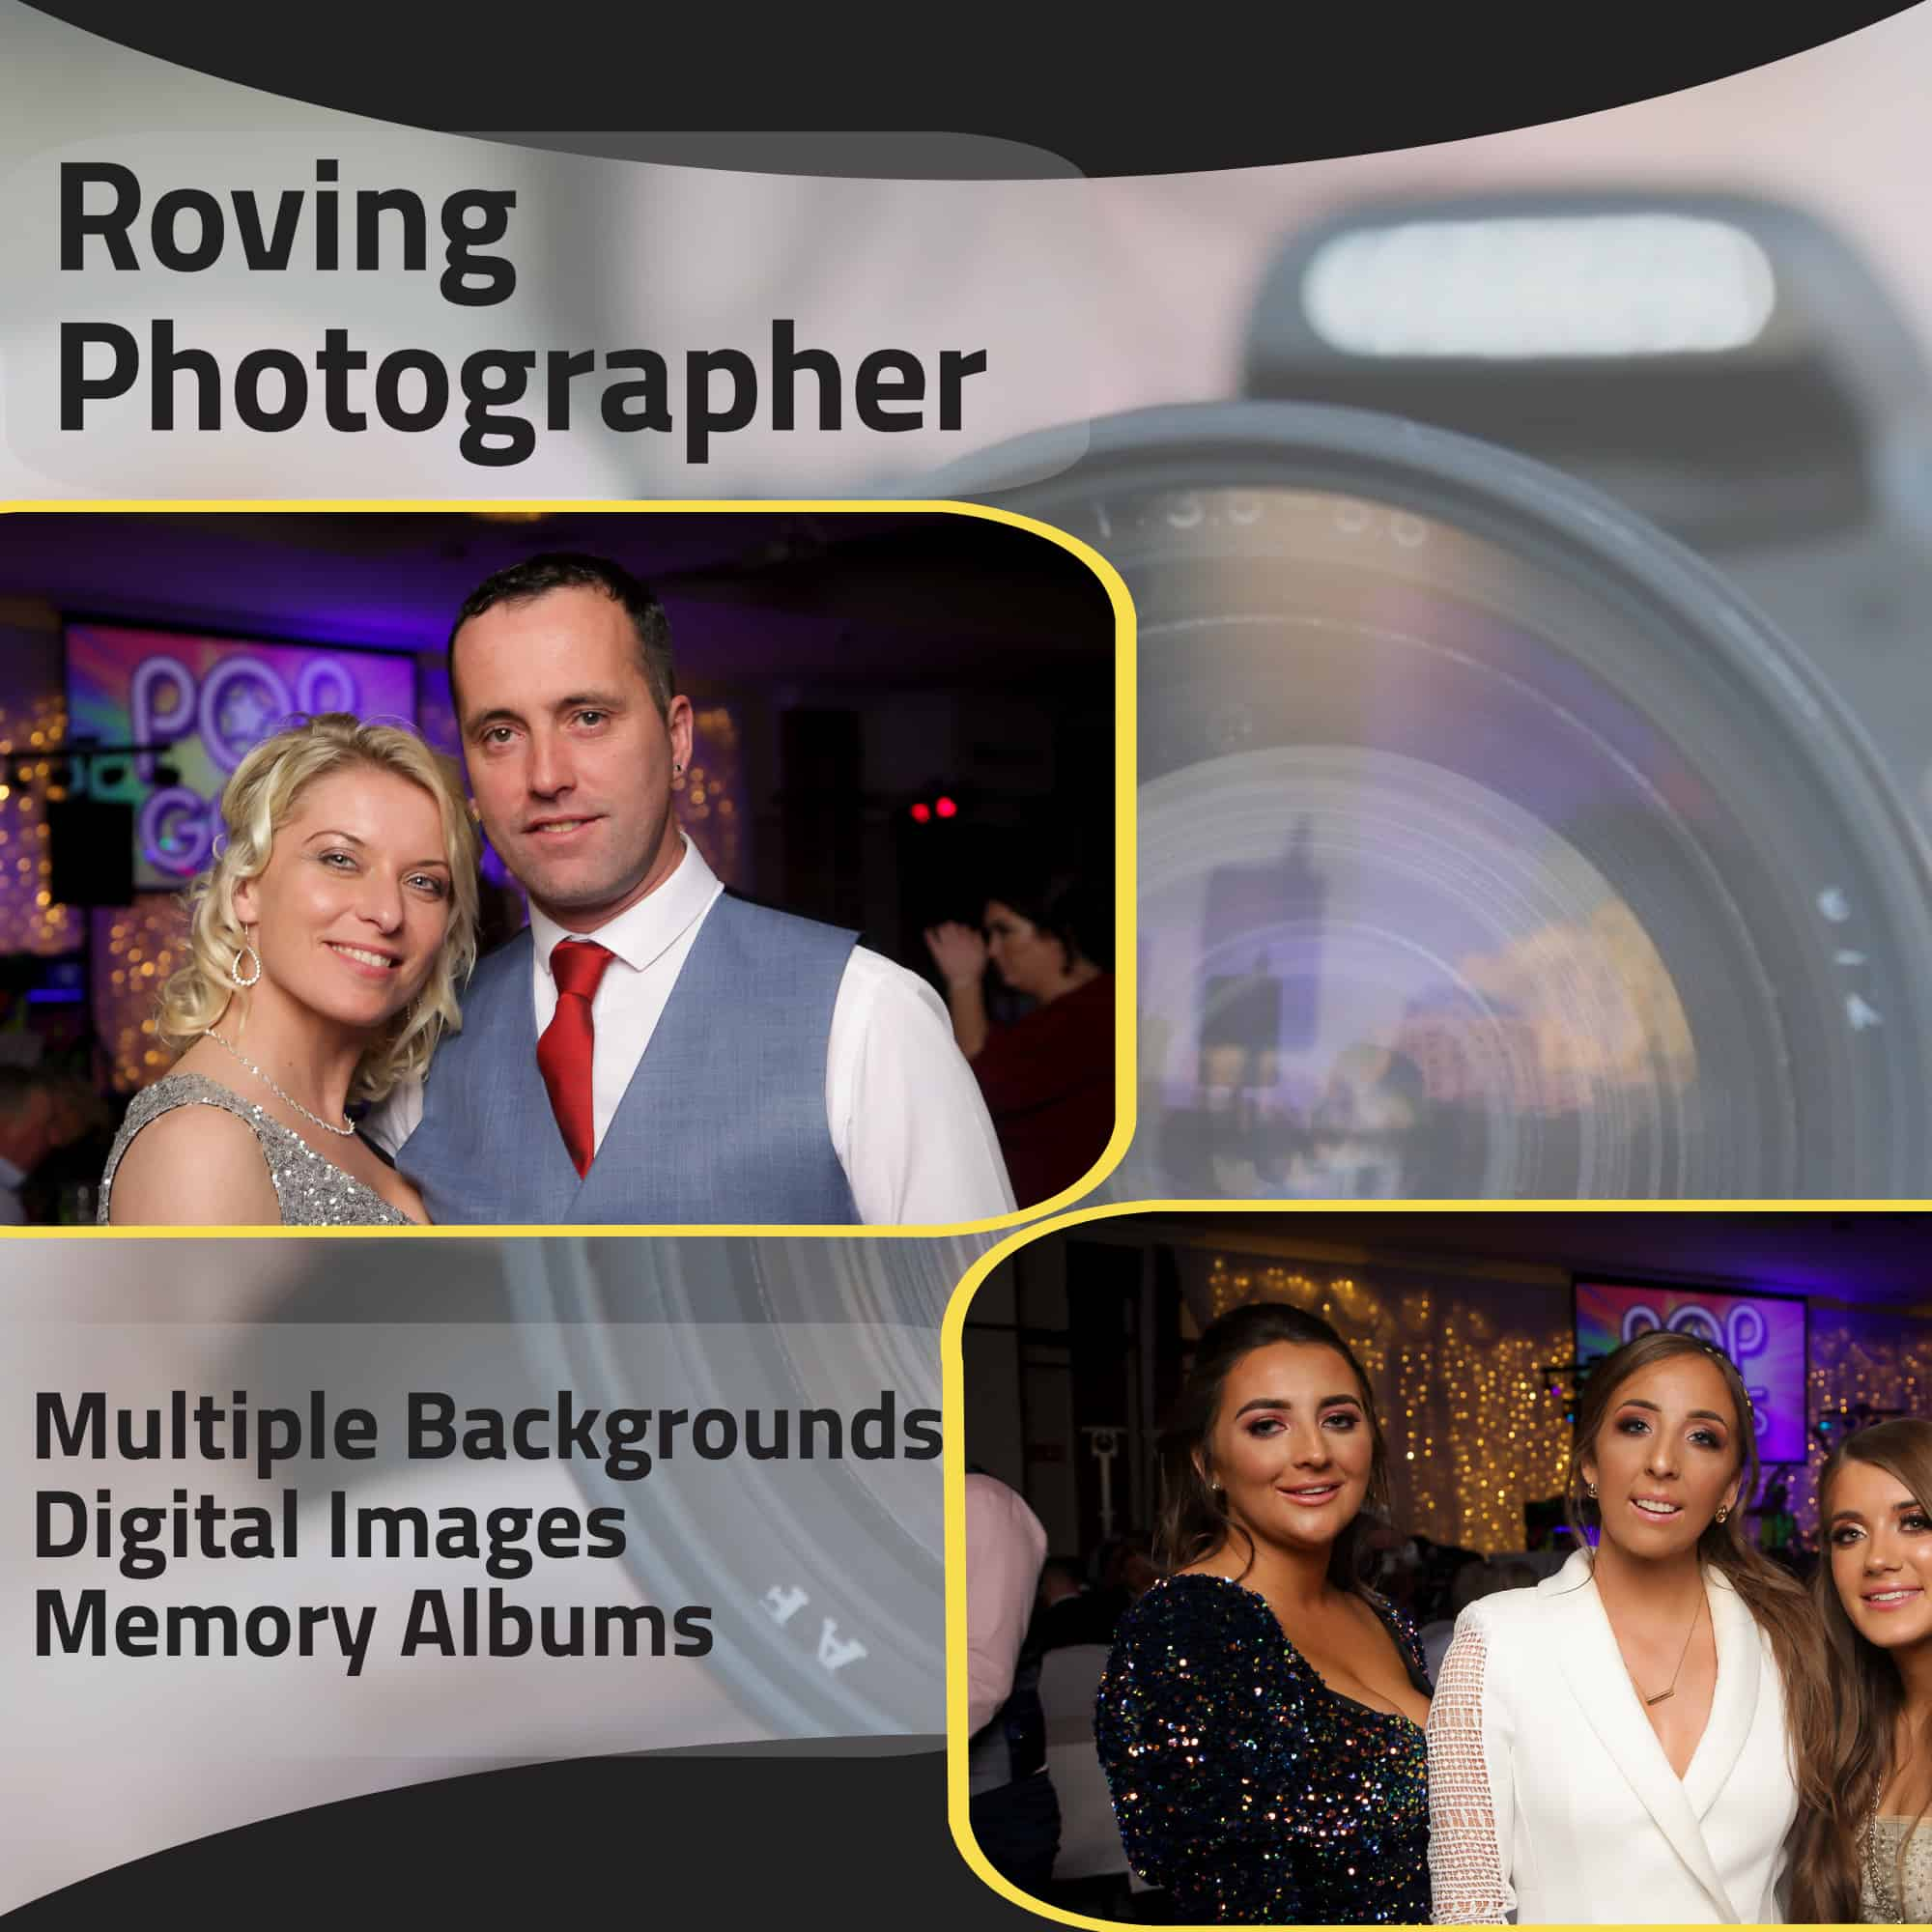 RovingPhotographer | Social Media Showcase | Web Development and Support Services